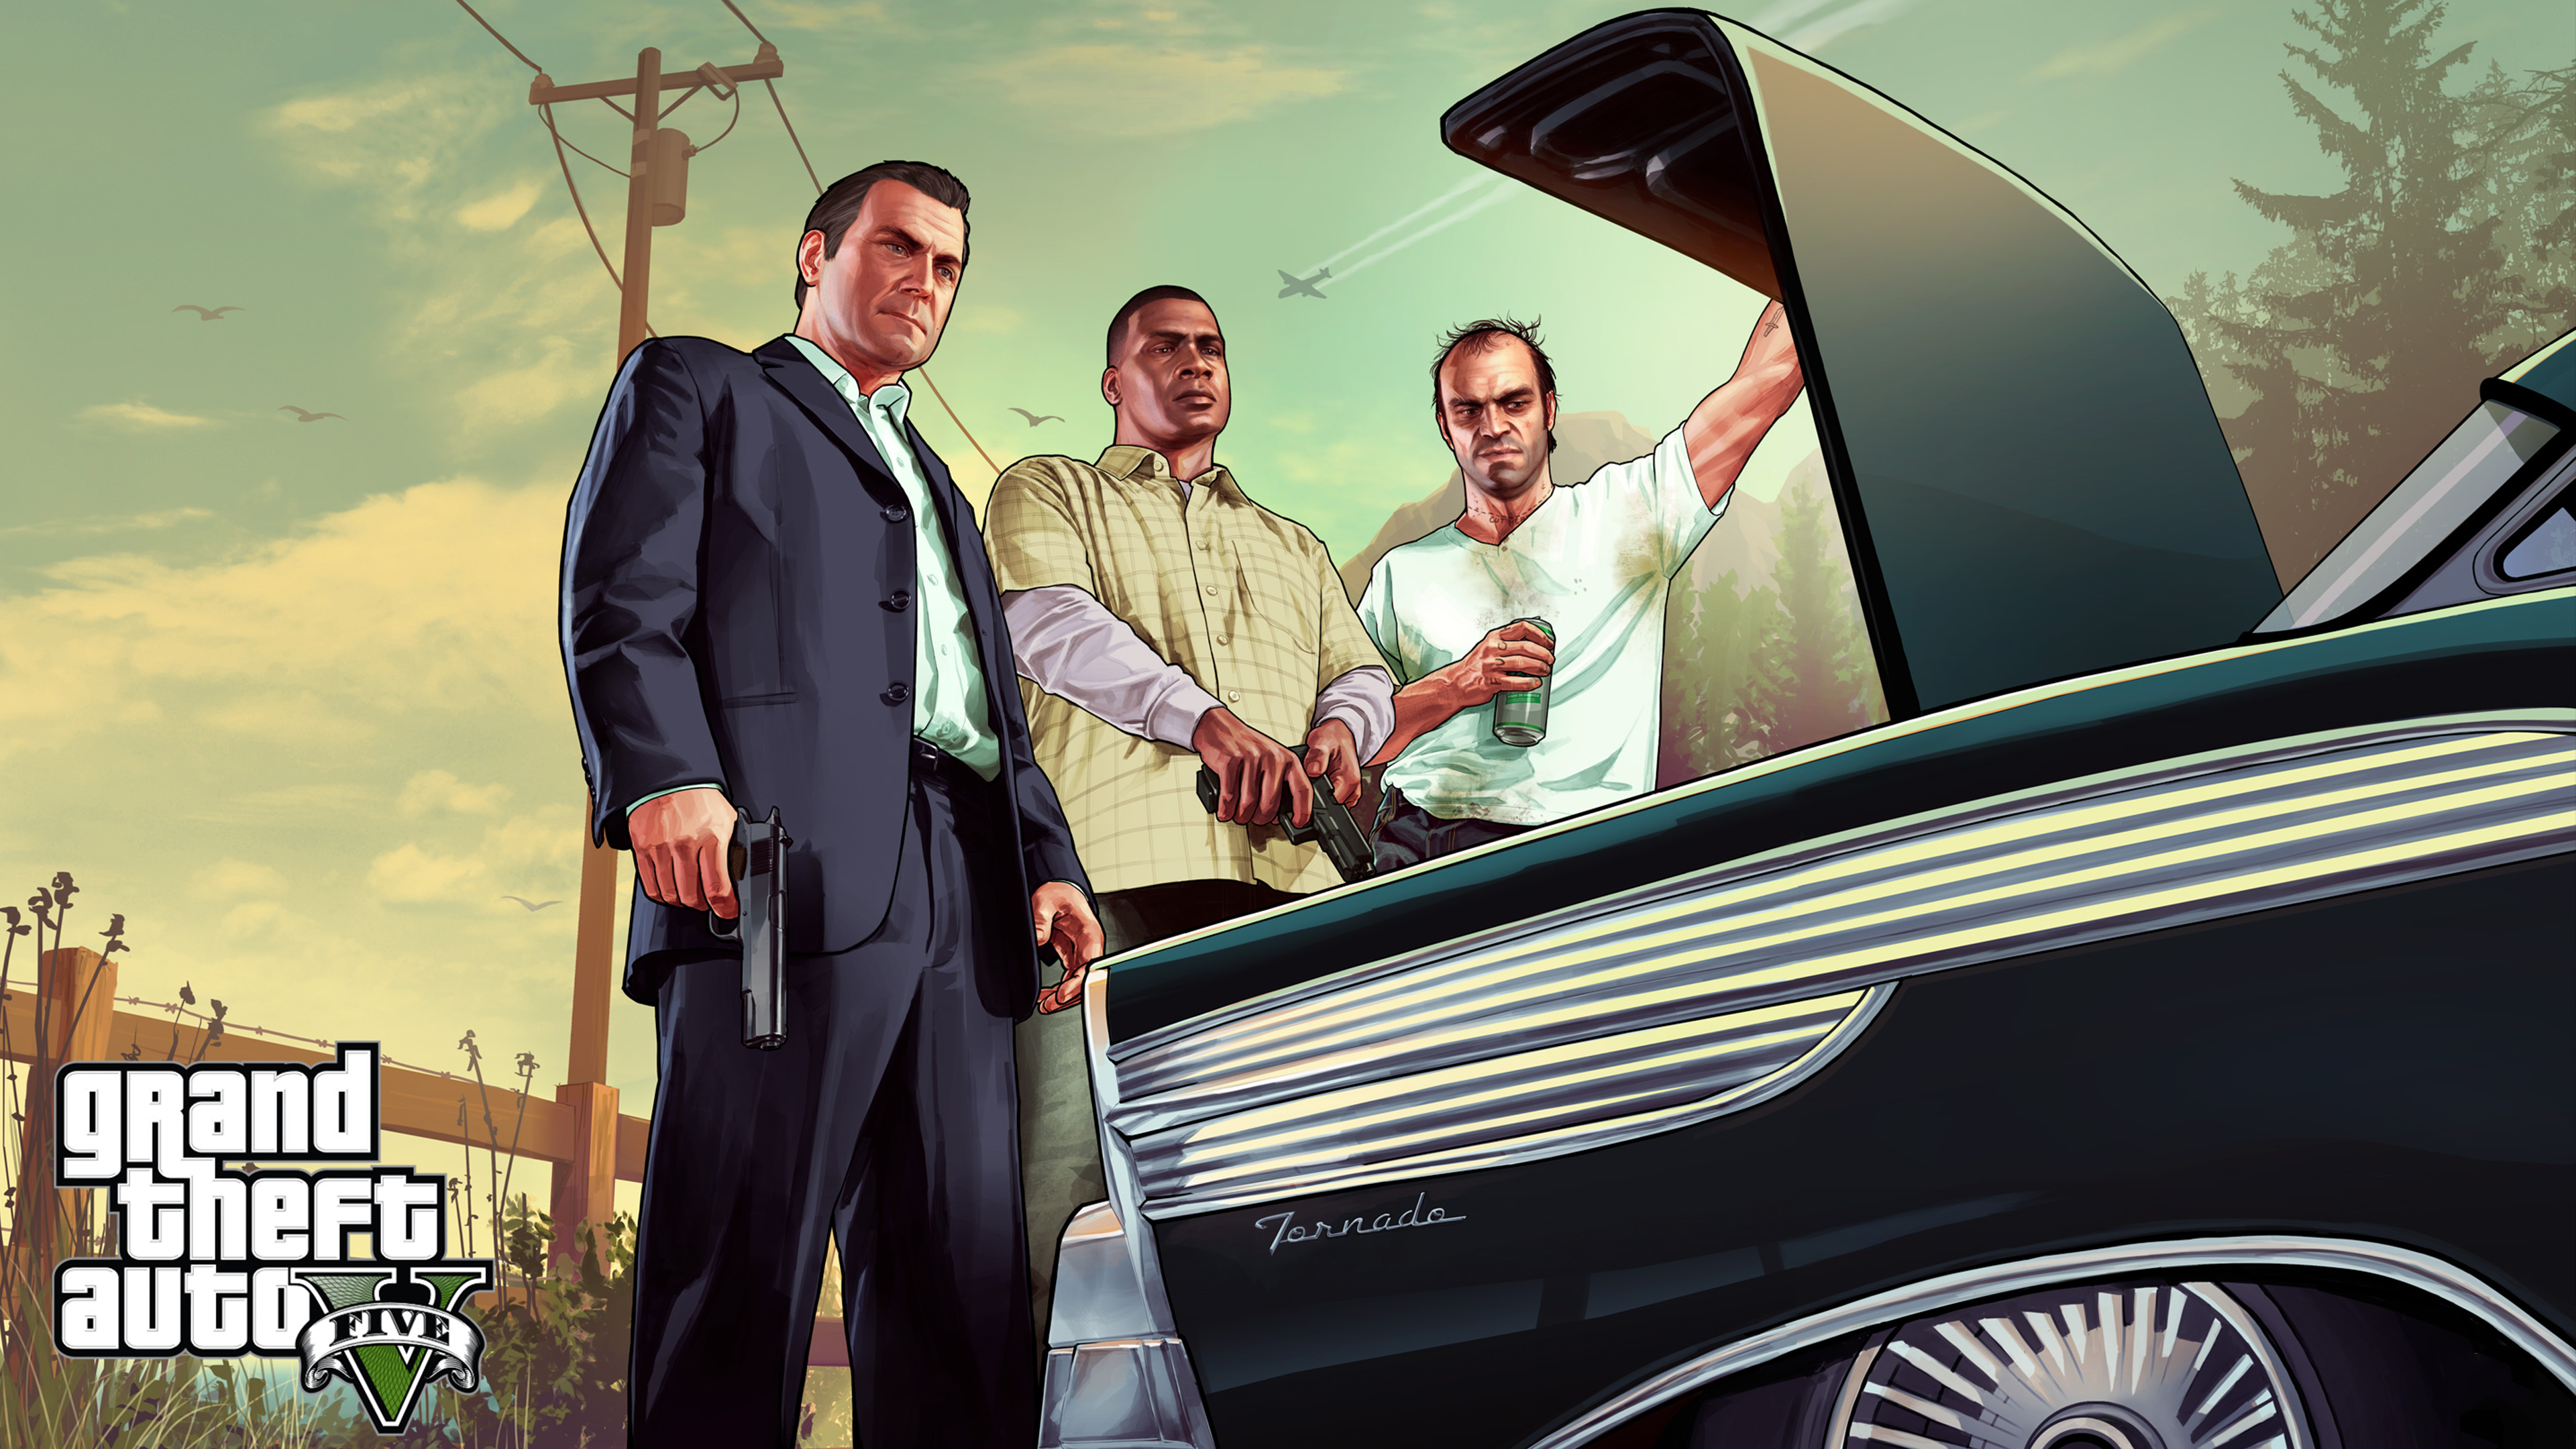 download free hd gta 5 trunk desktop wallpaper in 4k 0236